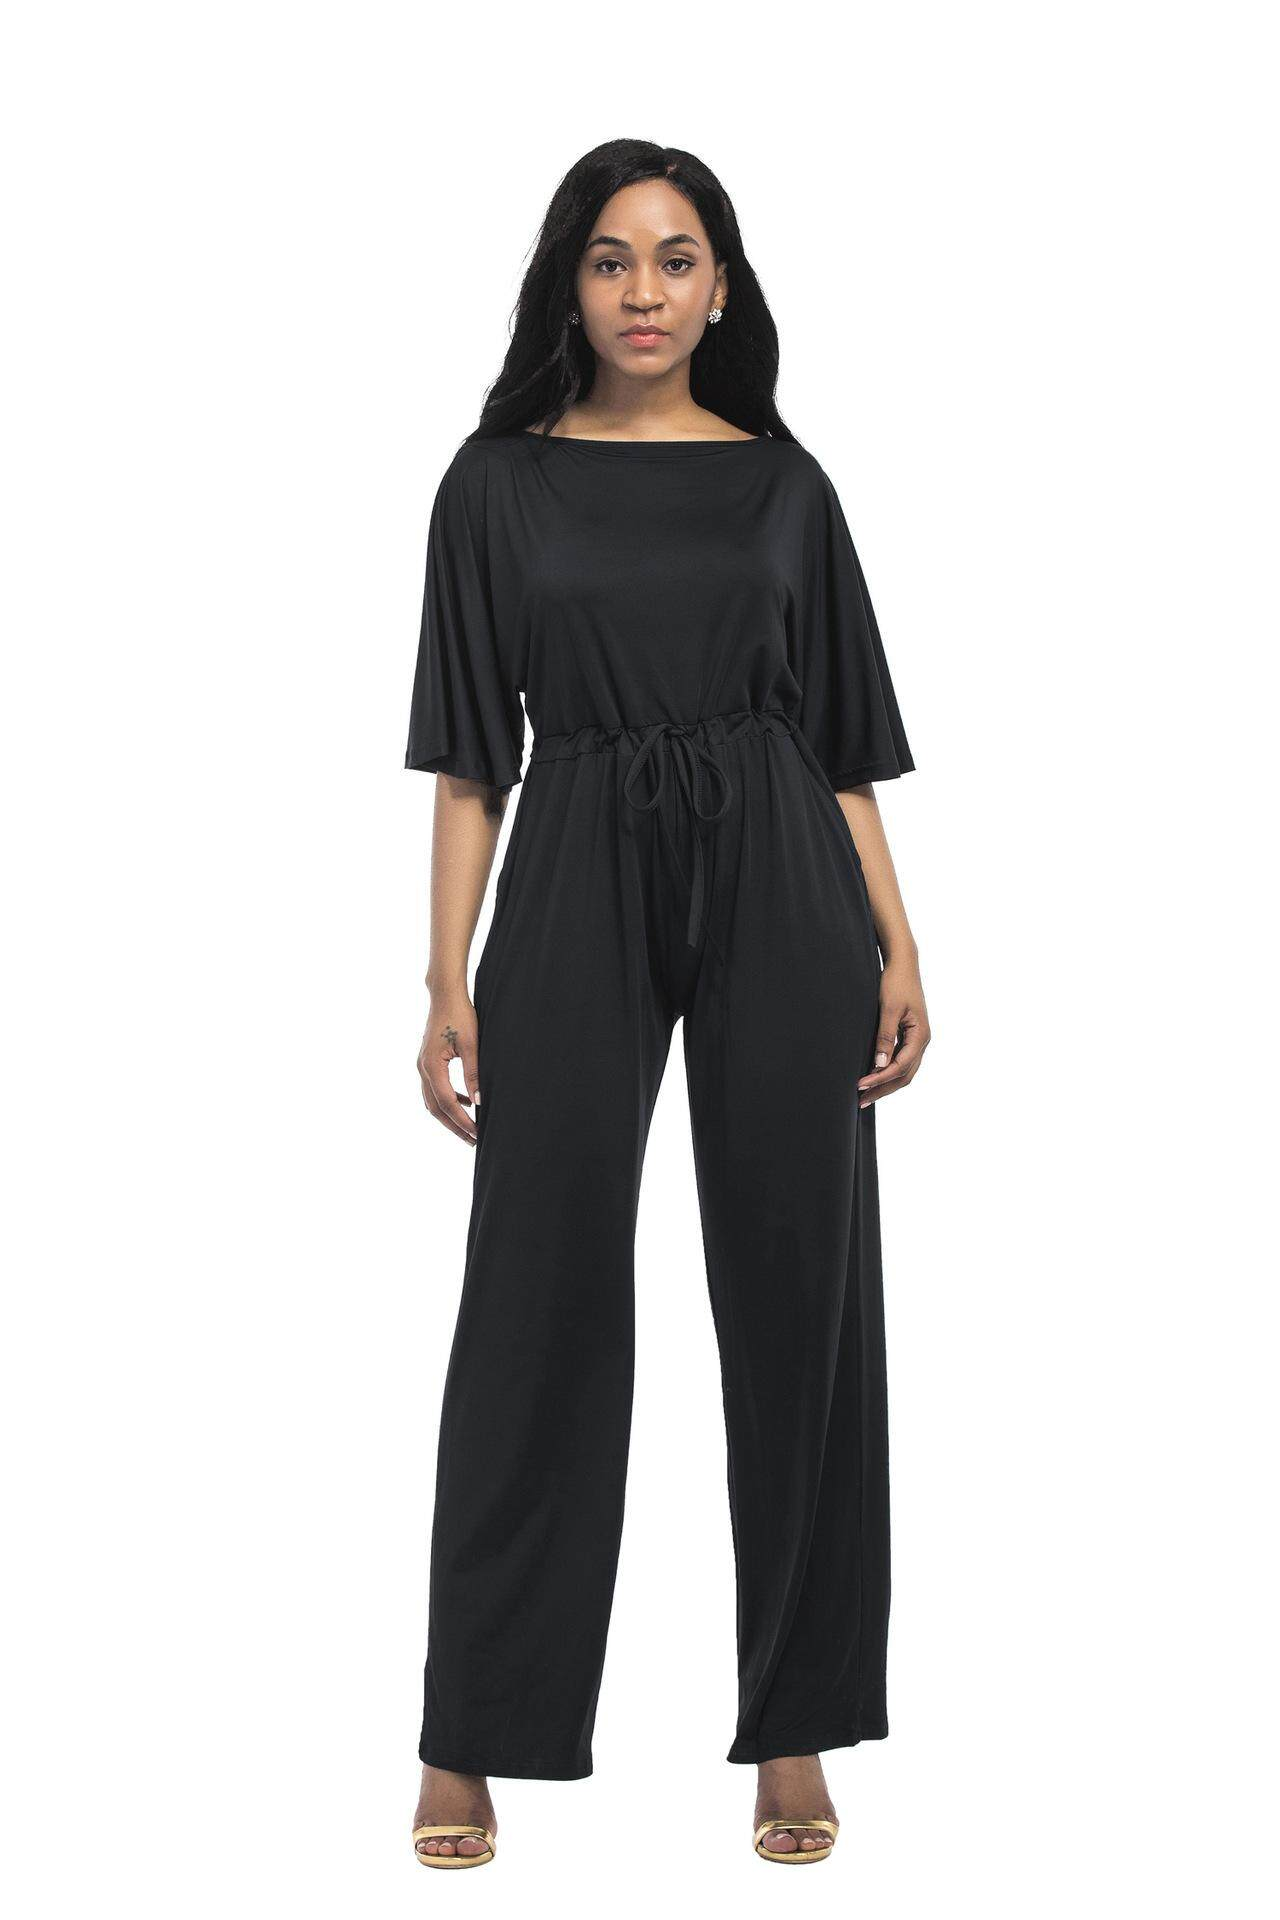 Womens Jumpsuits Playsuits Buy At Lgs Slim Fit Youth Boy Giant Leap Merah Xl Large Size Casual Loose Solid Color Wide Leg Pants Jumpsuit Black